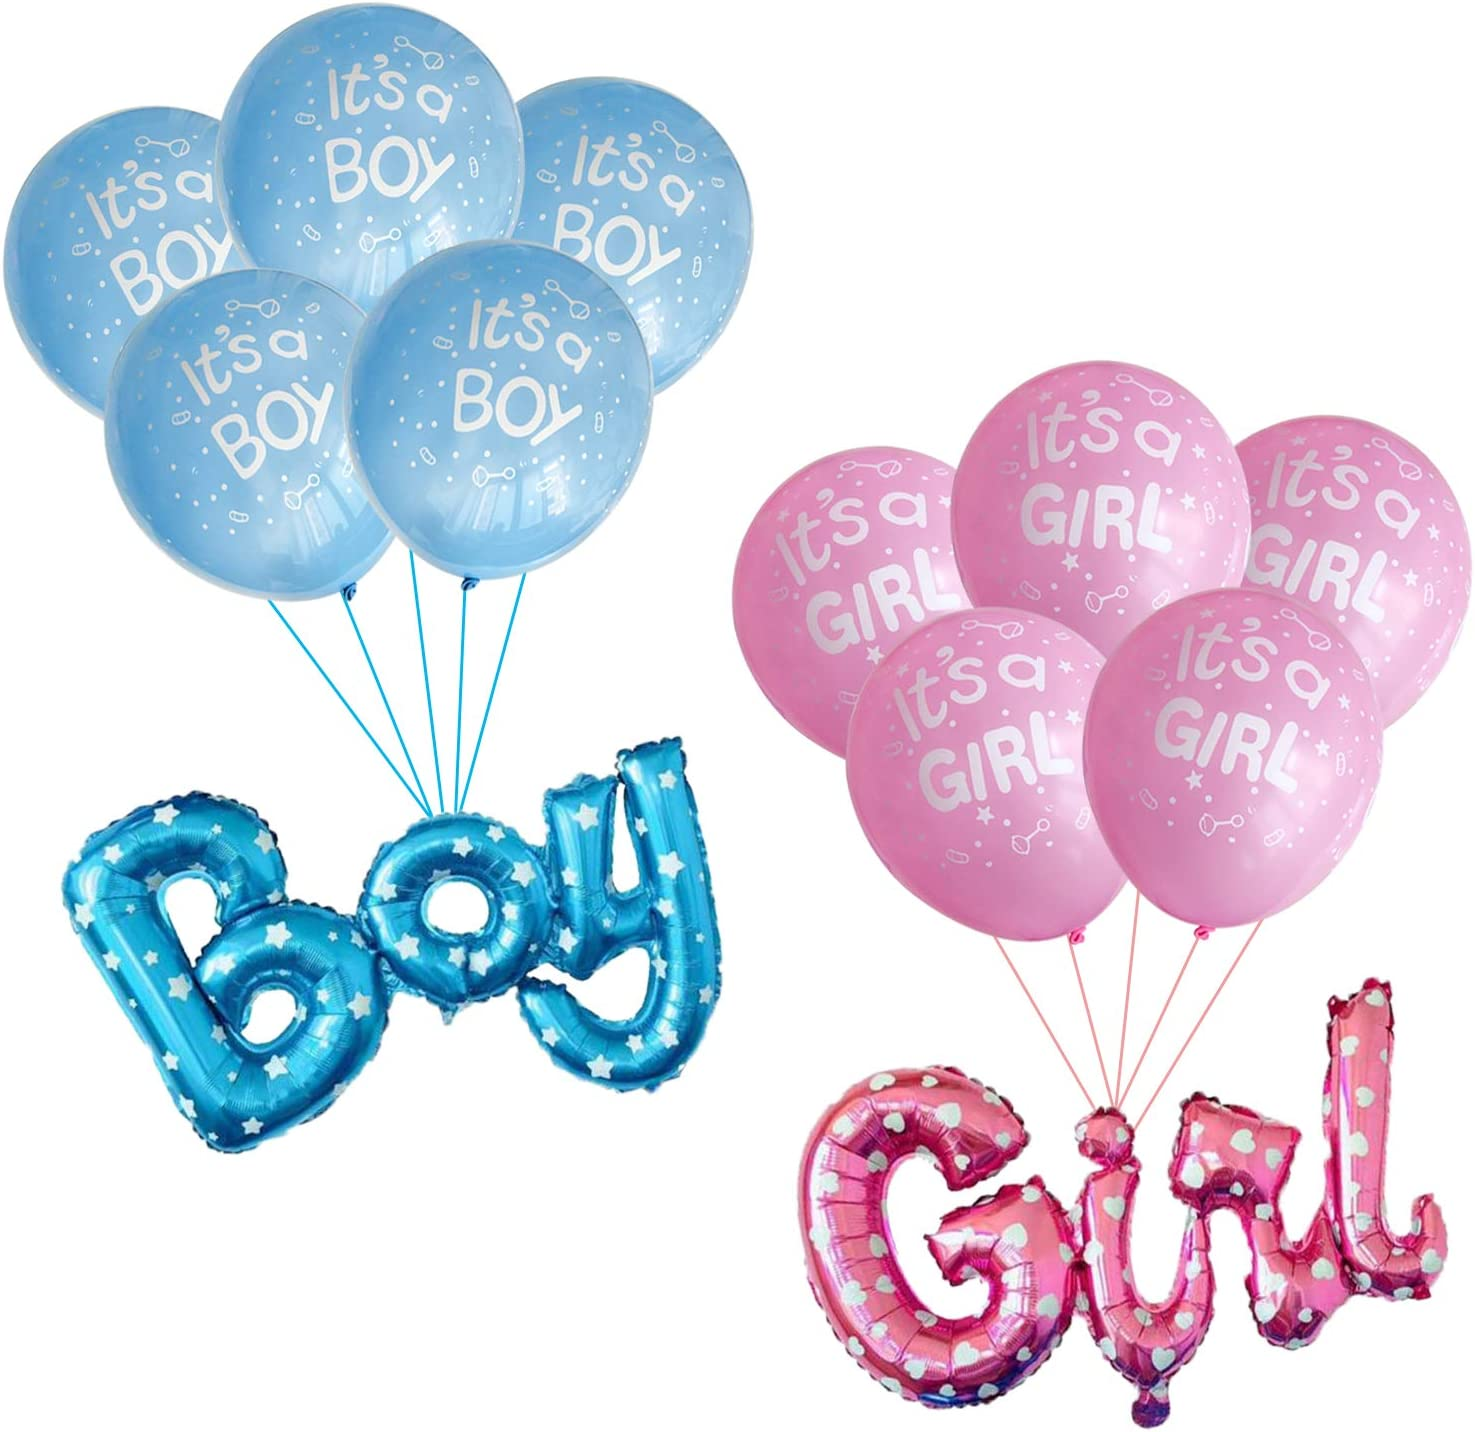 Its a Boy Girl Balloons Latex Foil Baby Shower Gender Reveal Party Decorations